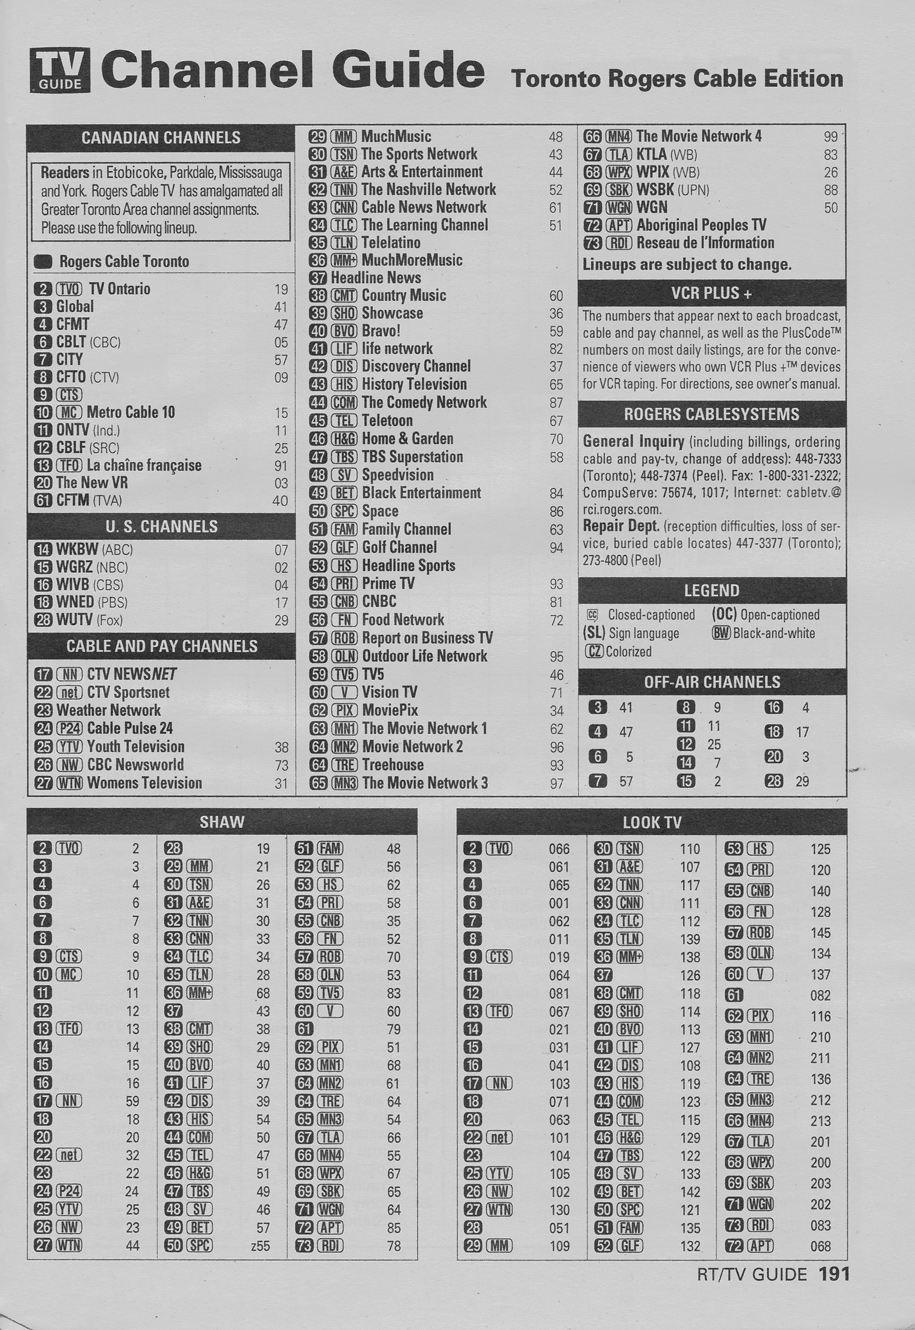 TV Guide June 10 2000 Toronto Rogers Cable Edition Channel Guide